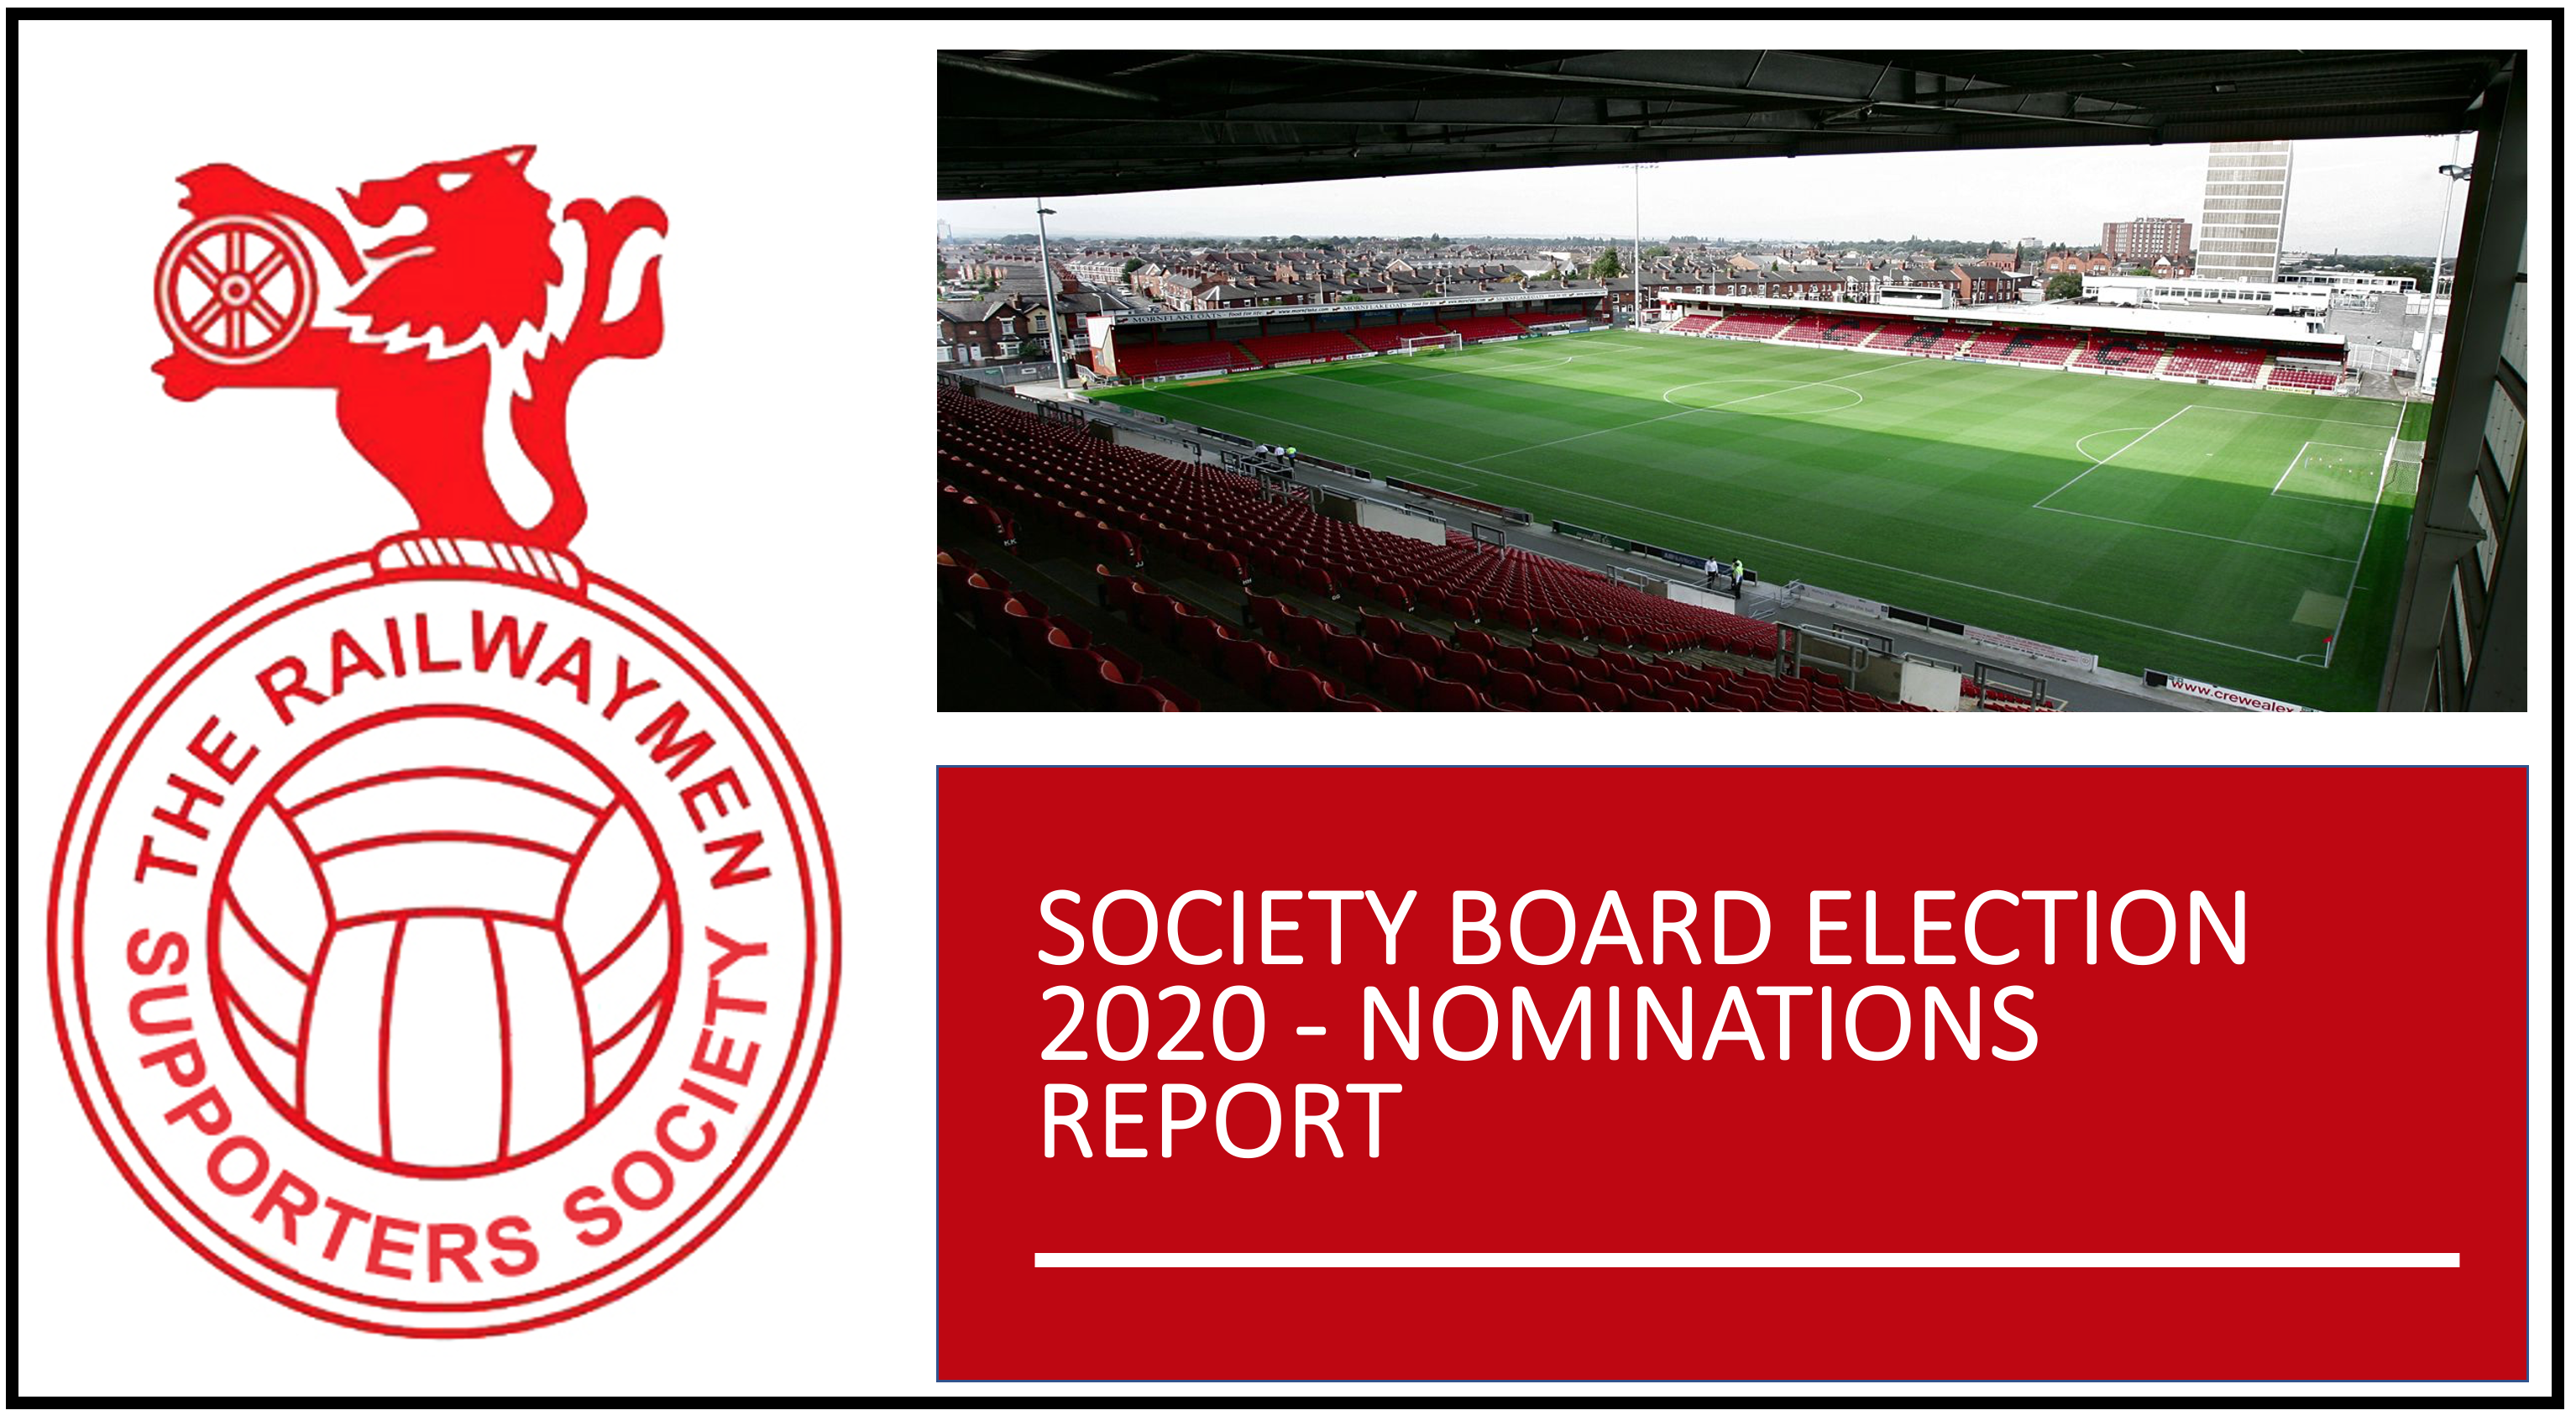 SOCIETY BOARD ELECTION 2020 – NOMINATIONS REPORT